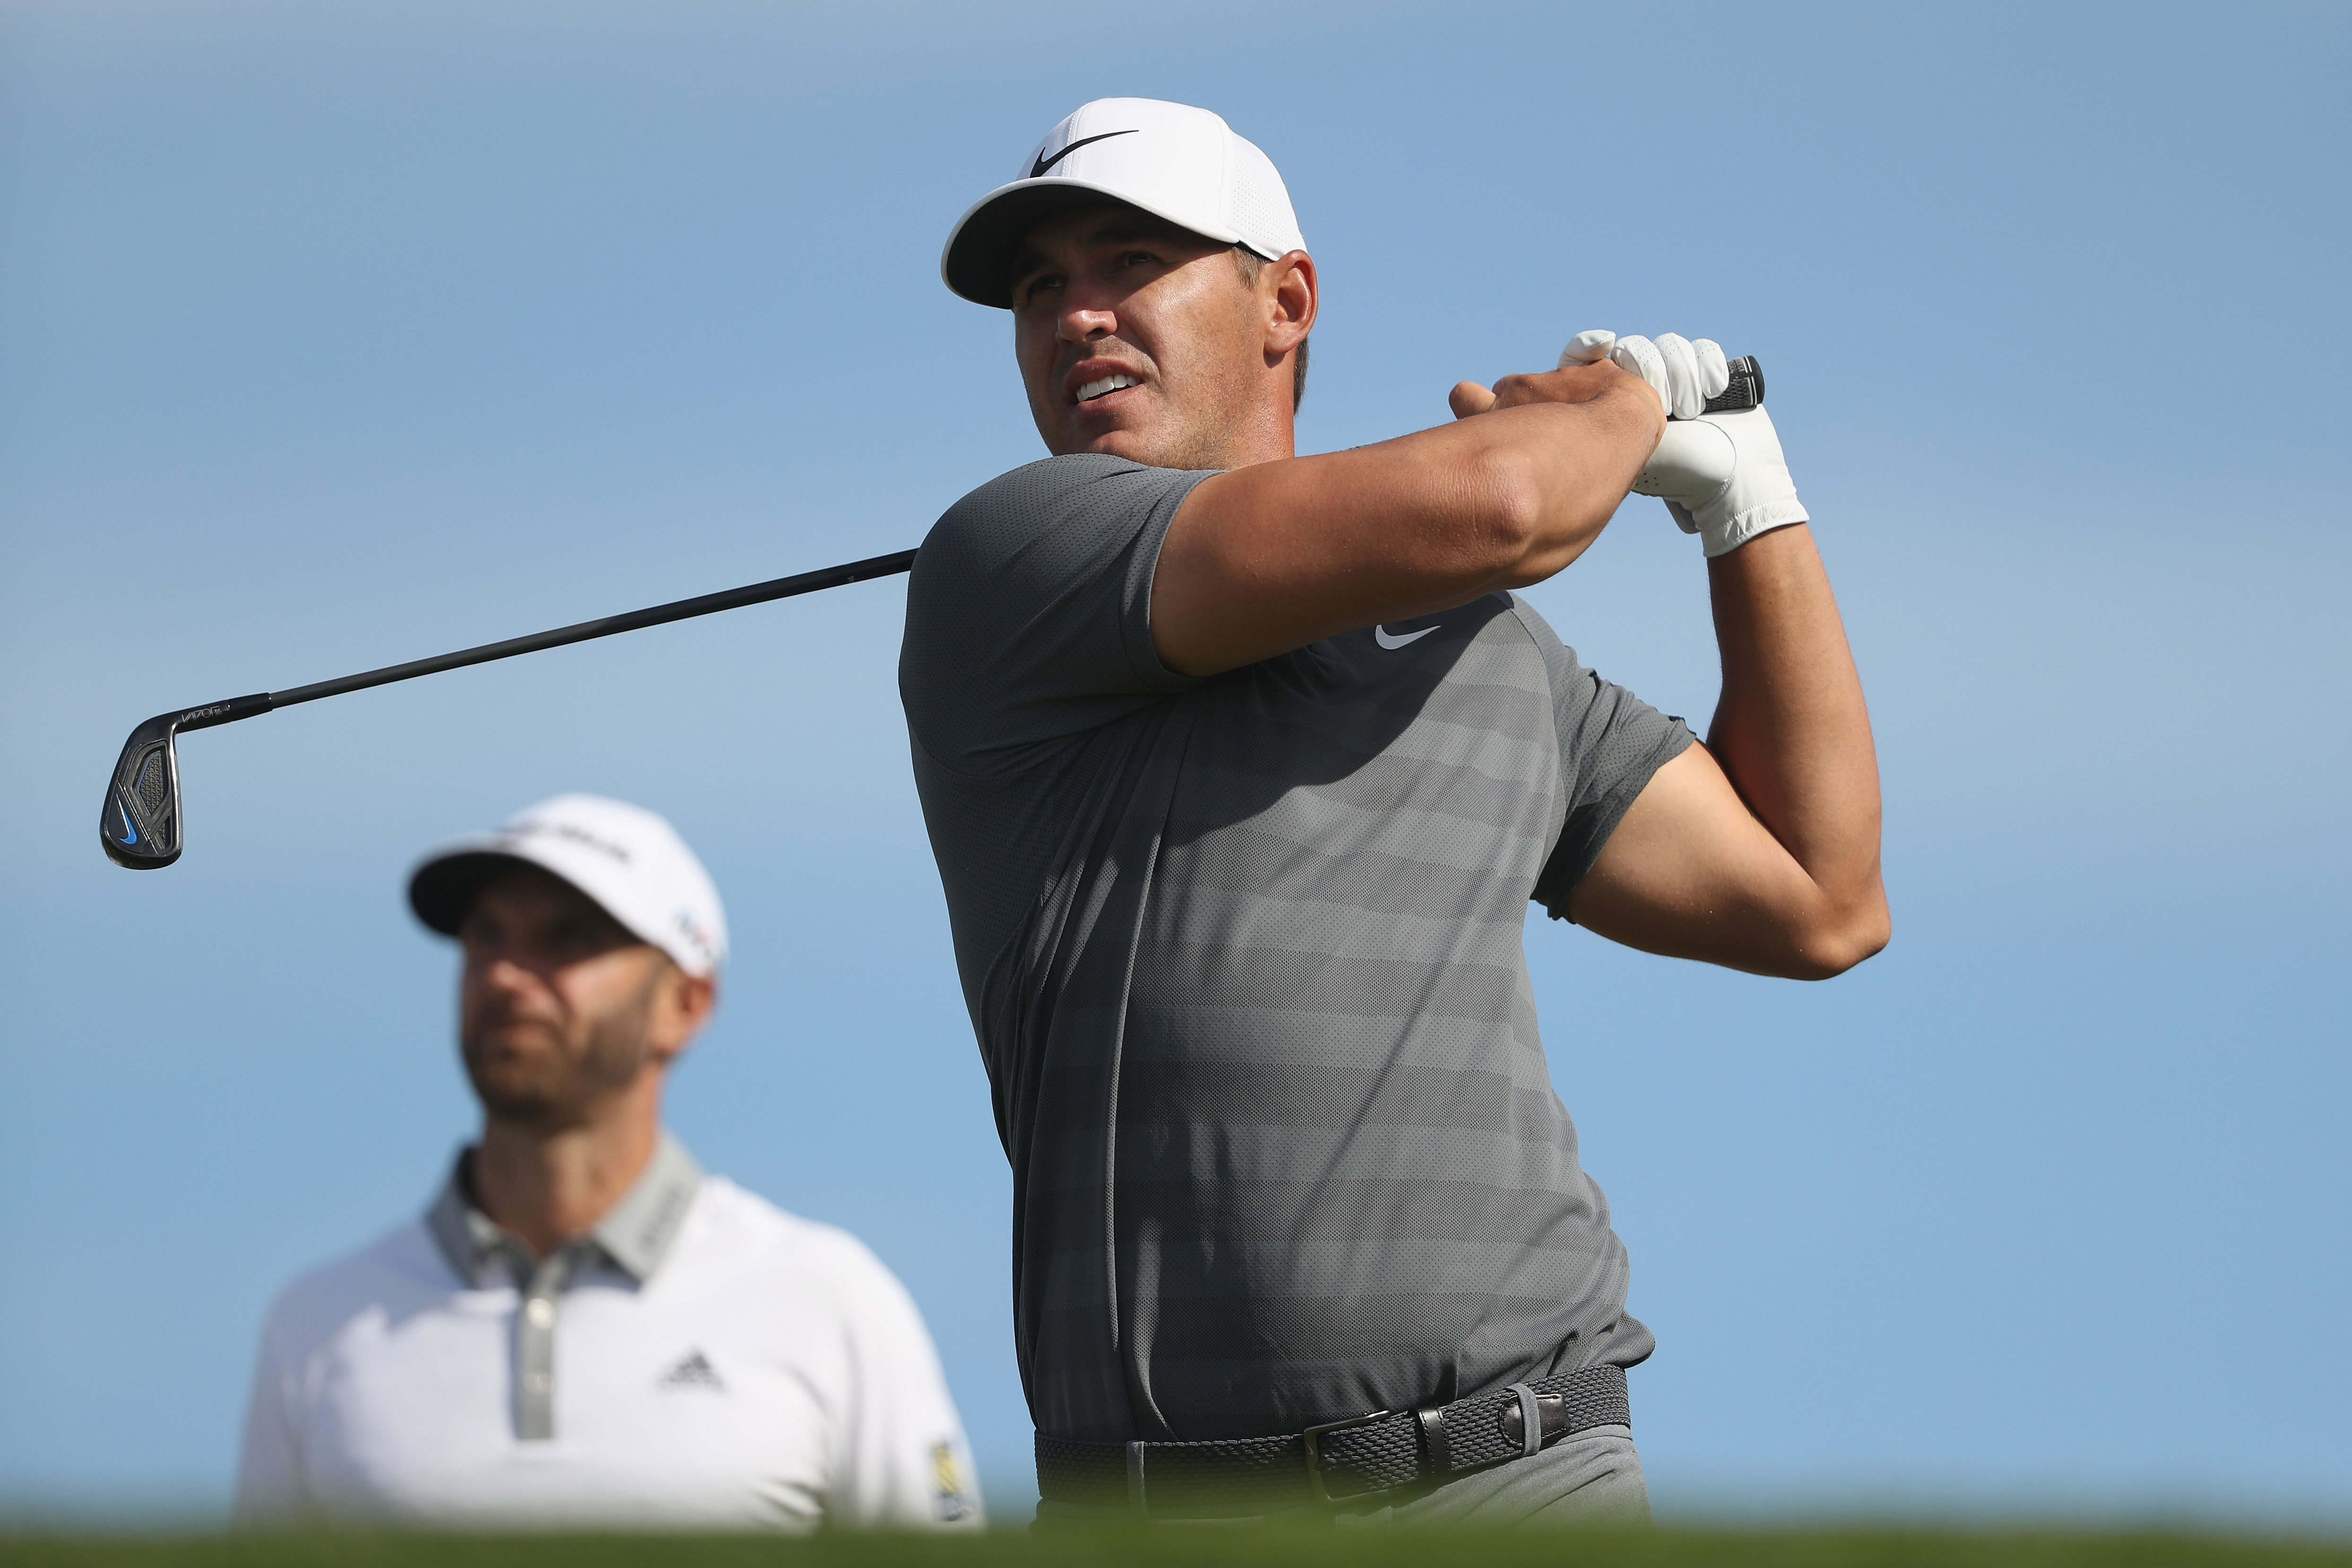 U S Open 2018 Brooks Koepka Wins U S Open Repeats As Champion After Shooting Closing 68 Golf News And Tour Information Golf Digest